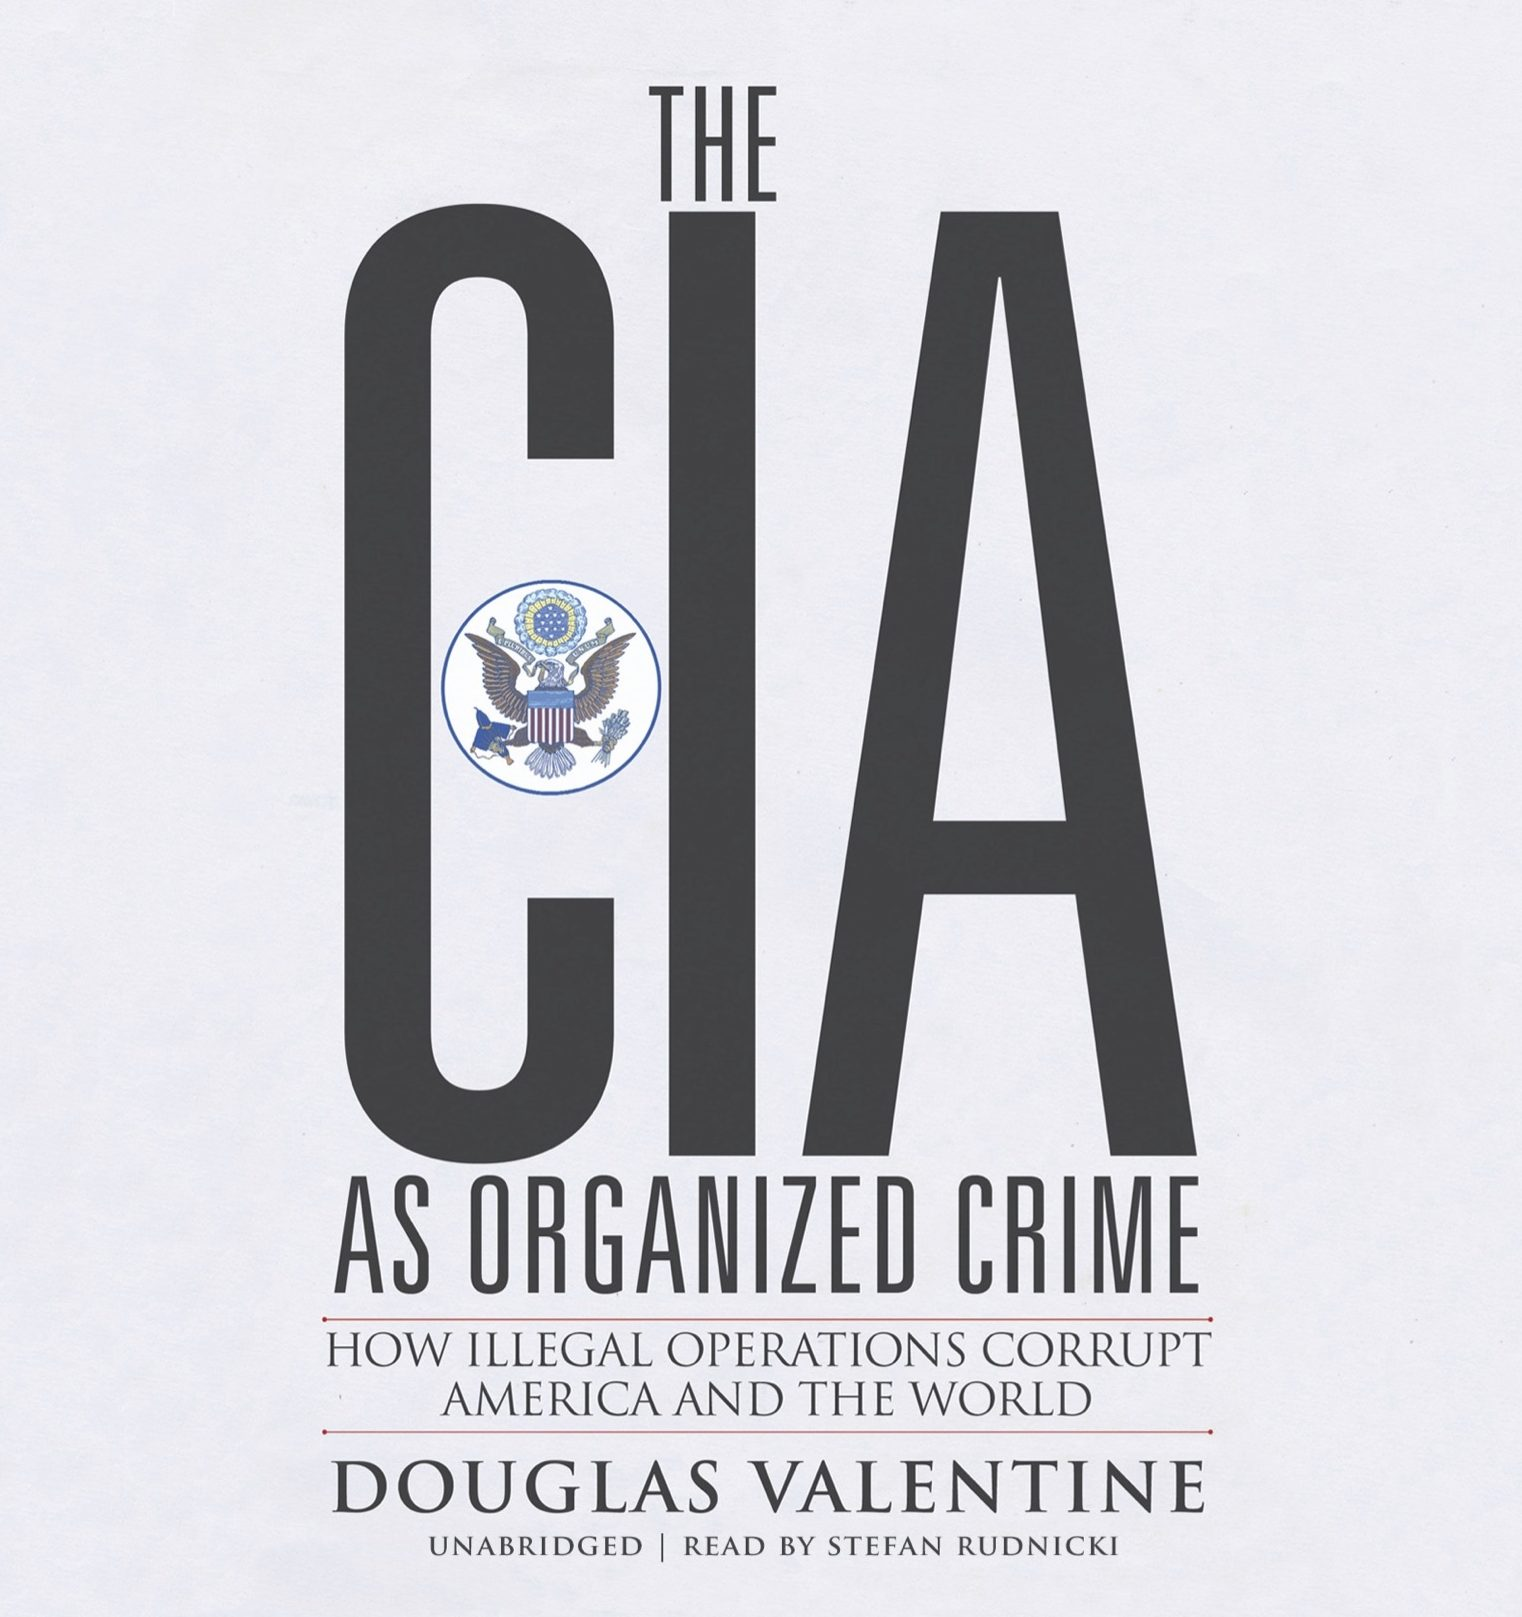 organized crime in america Free organized crime papers, essays, and research papers  the drop in the crime rate of america is mainly because of three top reasons.